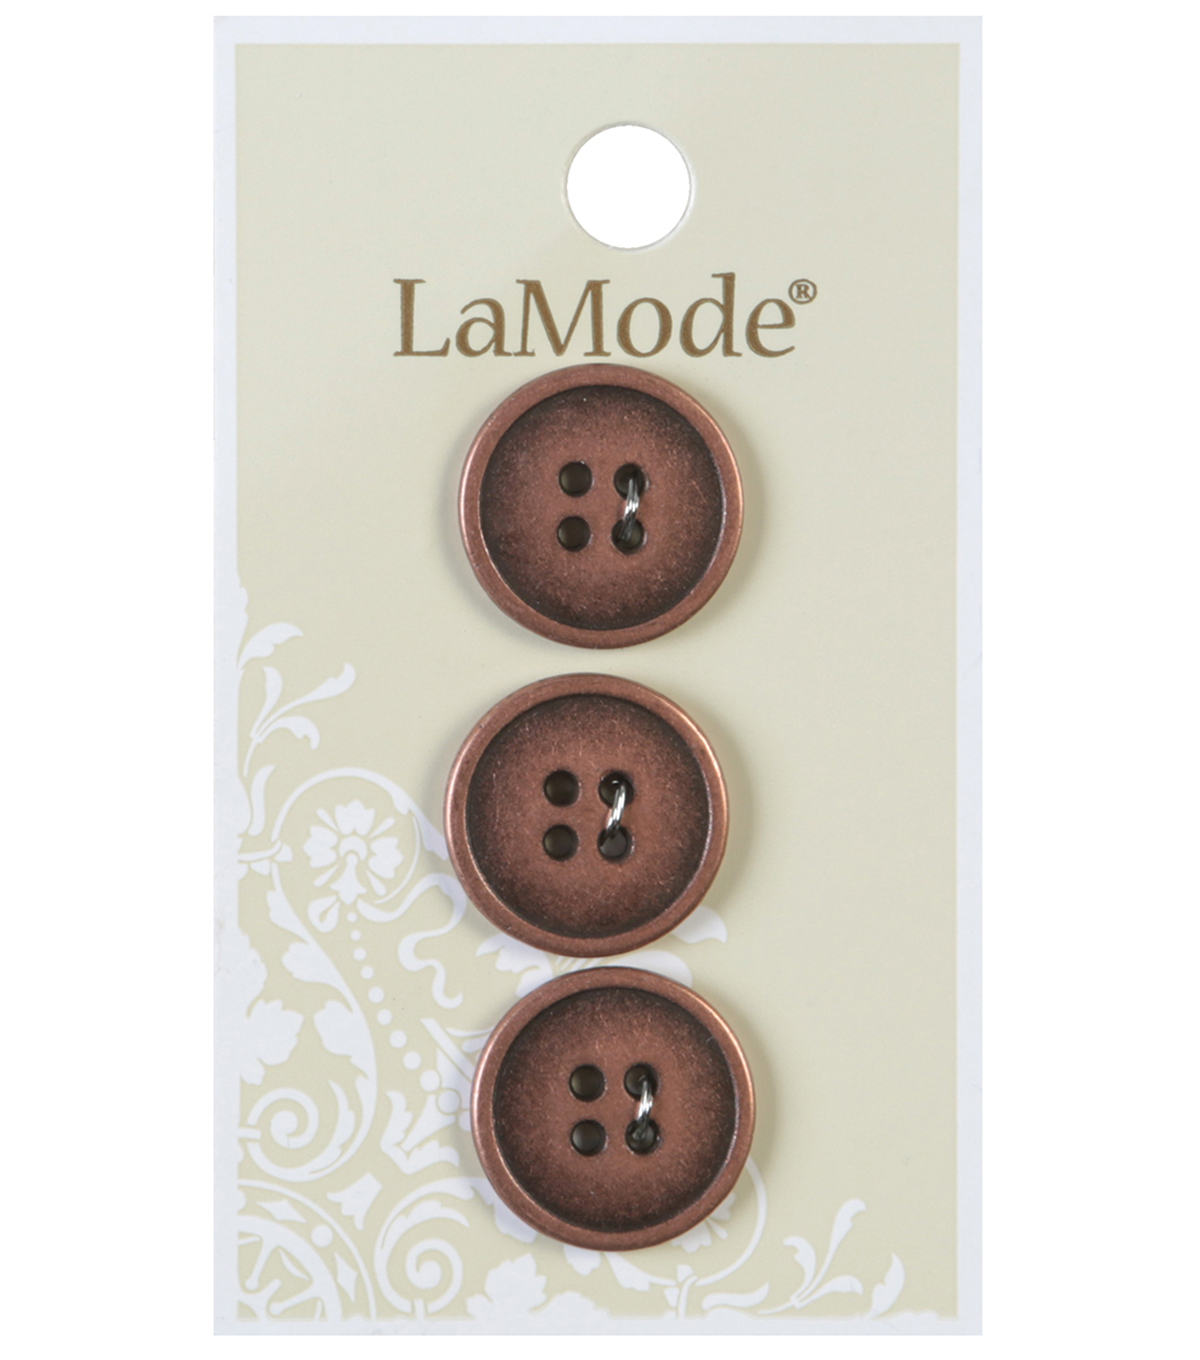 LaMode 4 Hole Antique Copper Metal Buttons 18mm